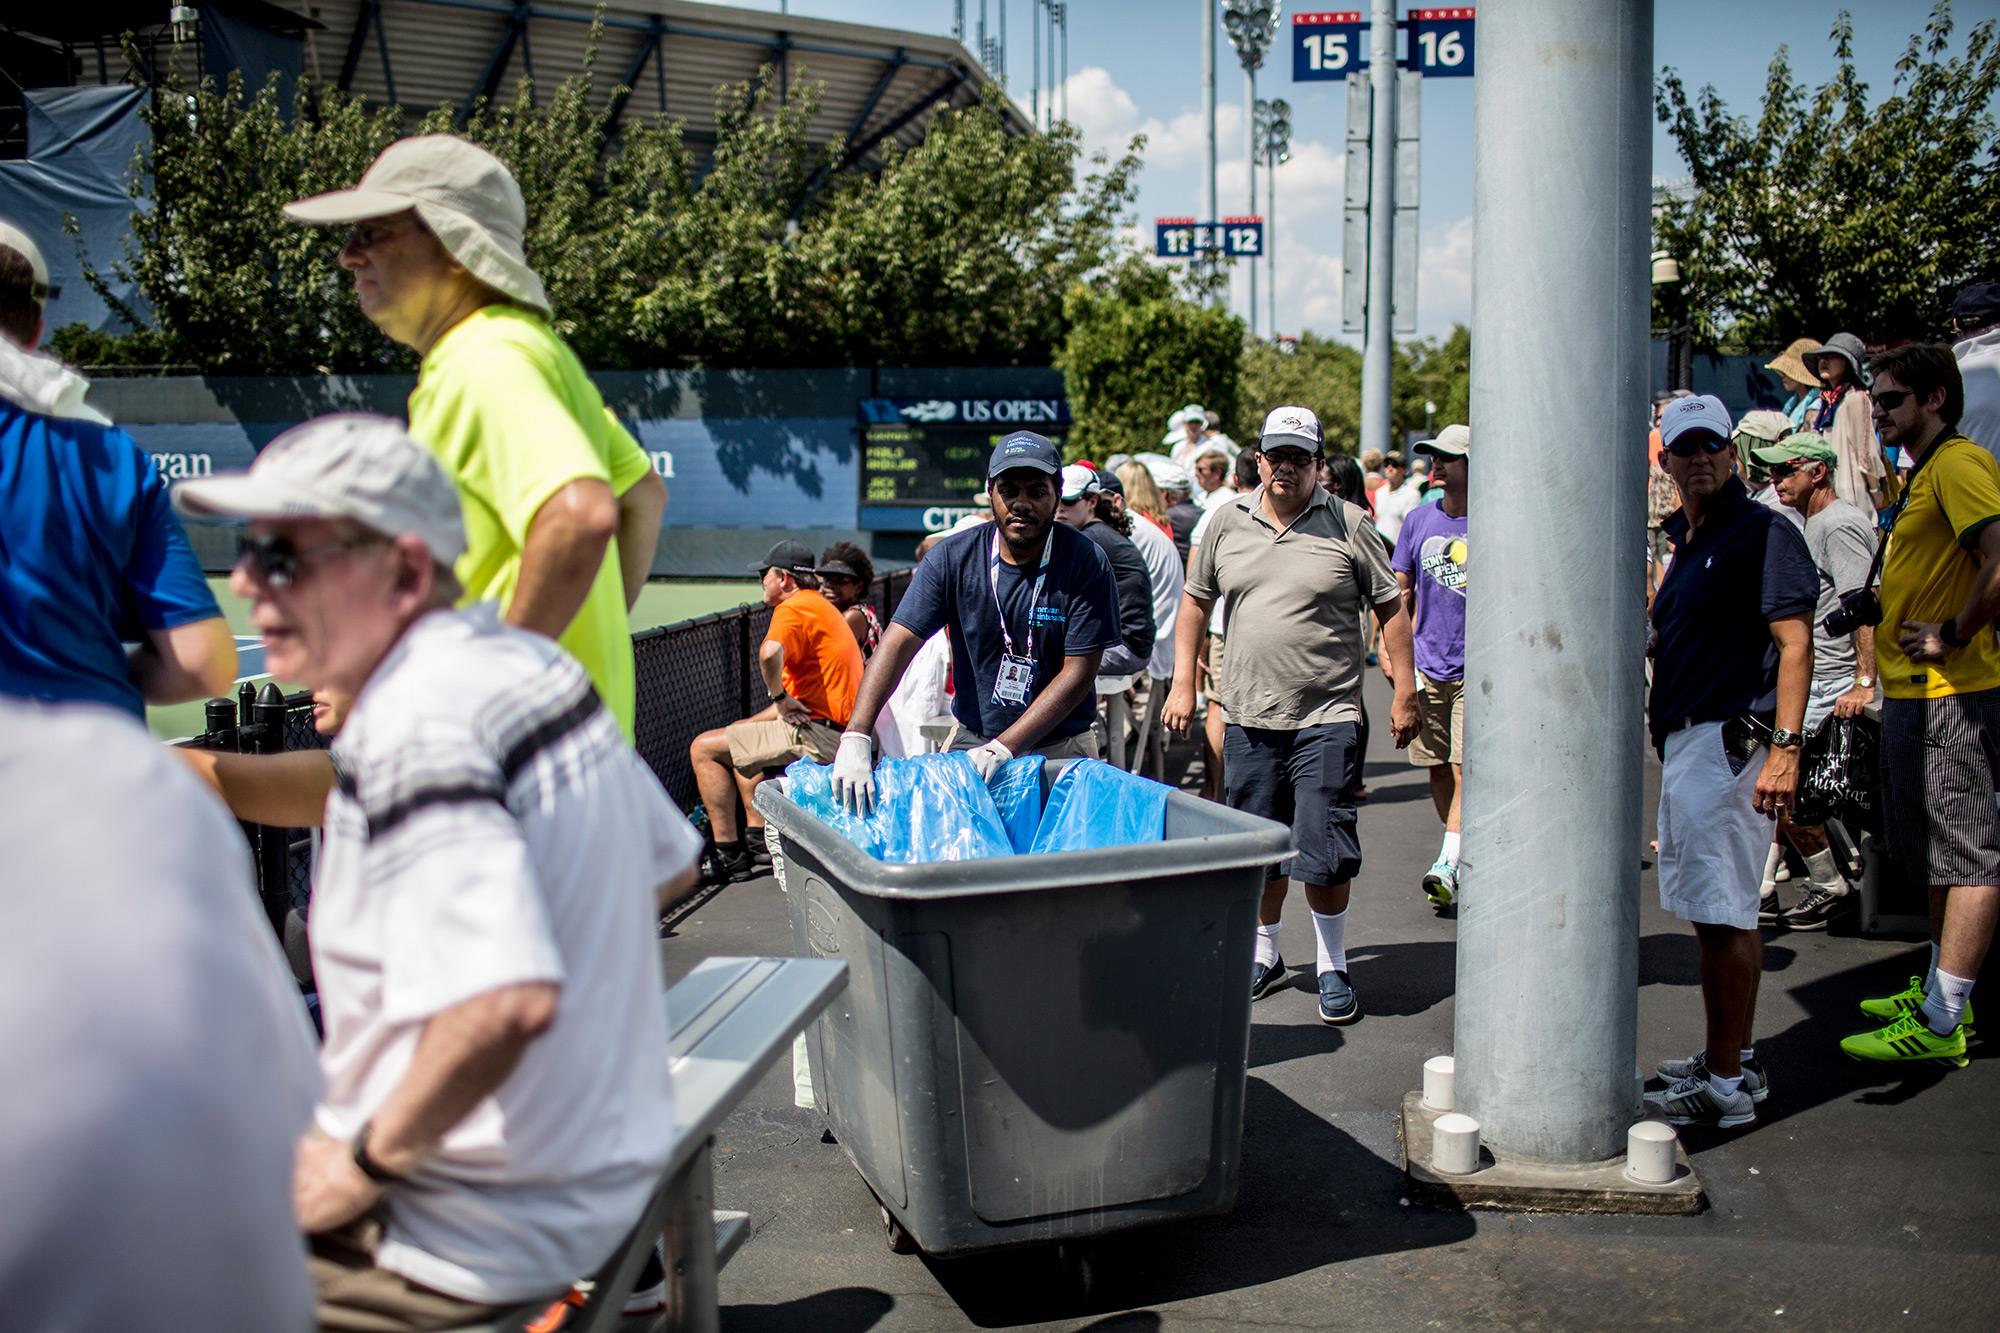 While silence is a staple of tennis etiquette, it was hard to come by on Court 15. At times, the rolling of a trash bin flooded the air during play. It was often louder than the applause from those in the stands.